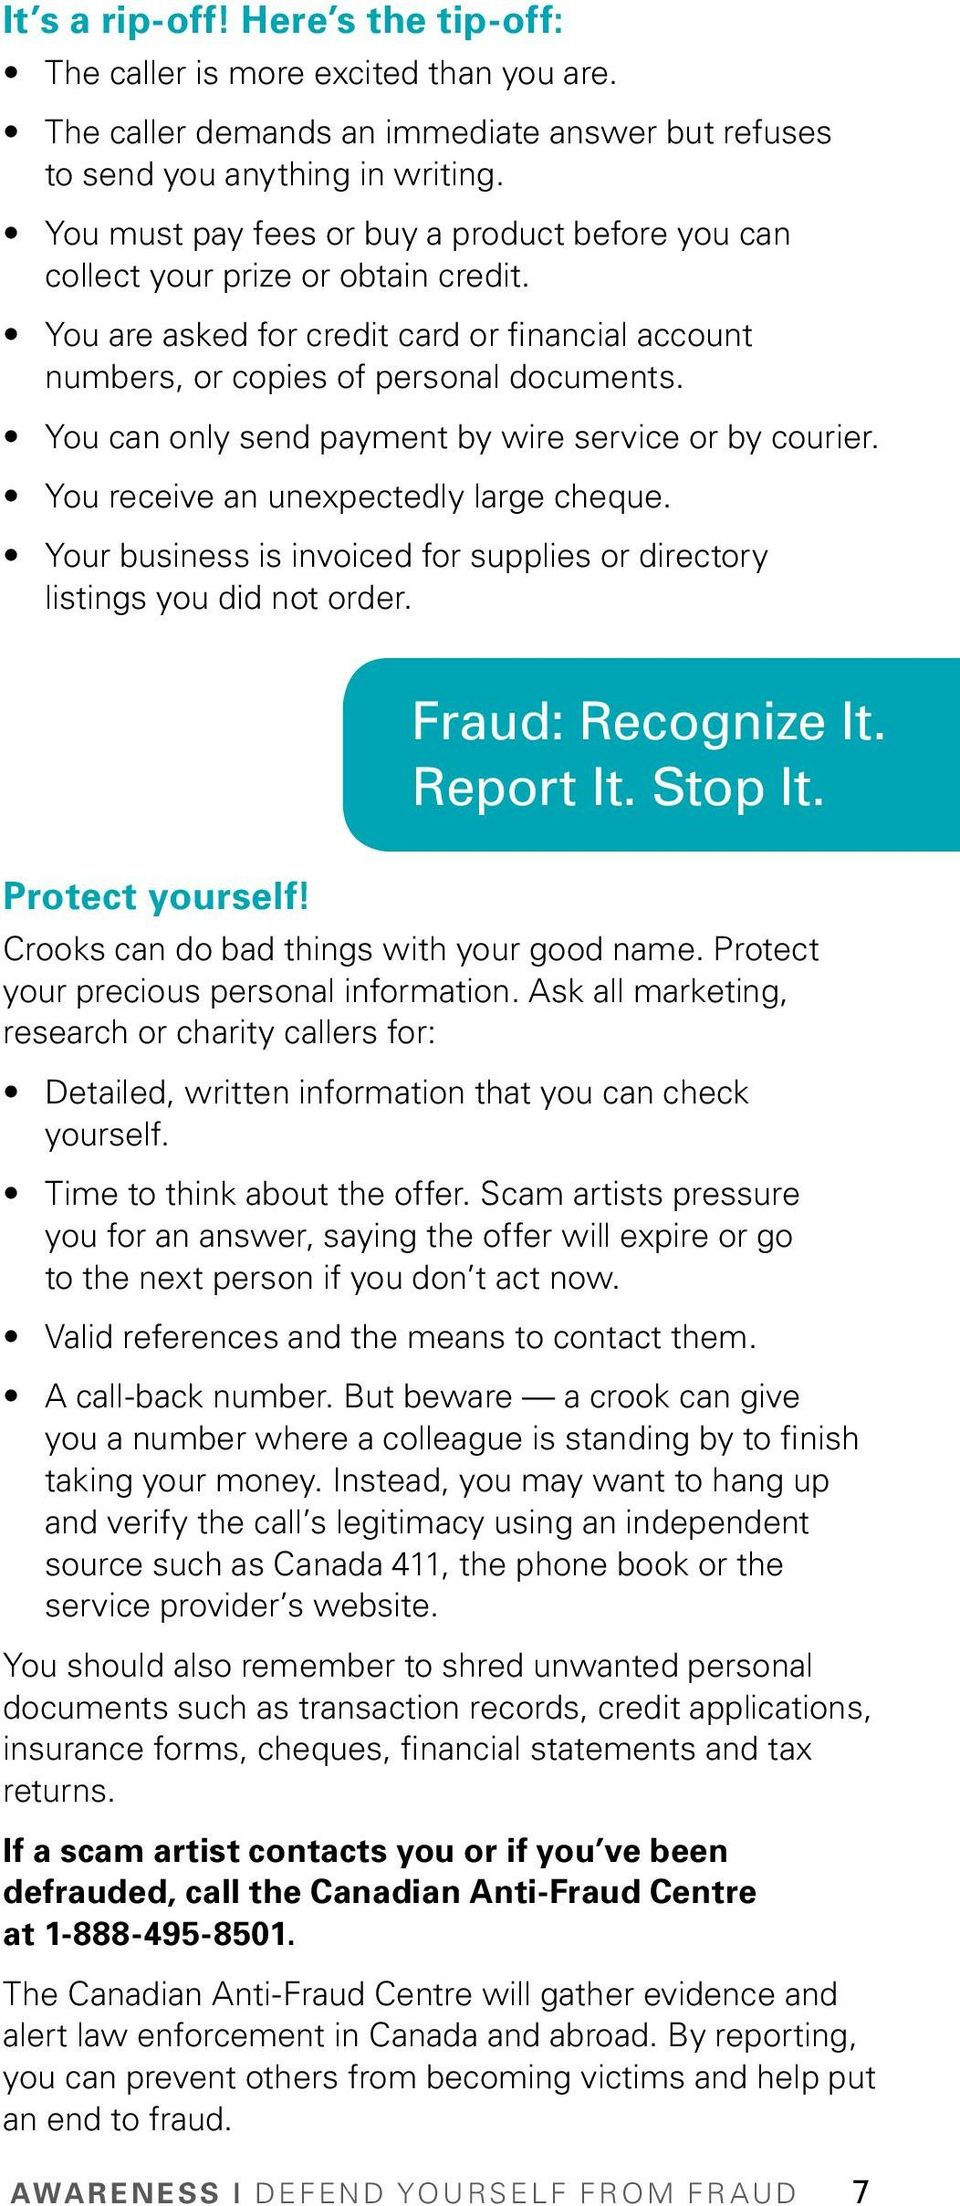 You can only send payment by wire service or by courier. You receive an unexpectedly large cheque. Your business is invoiced for supplies or directory listings you did not order. Fraud: Recognize It.